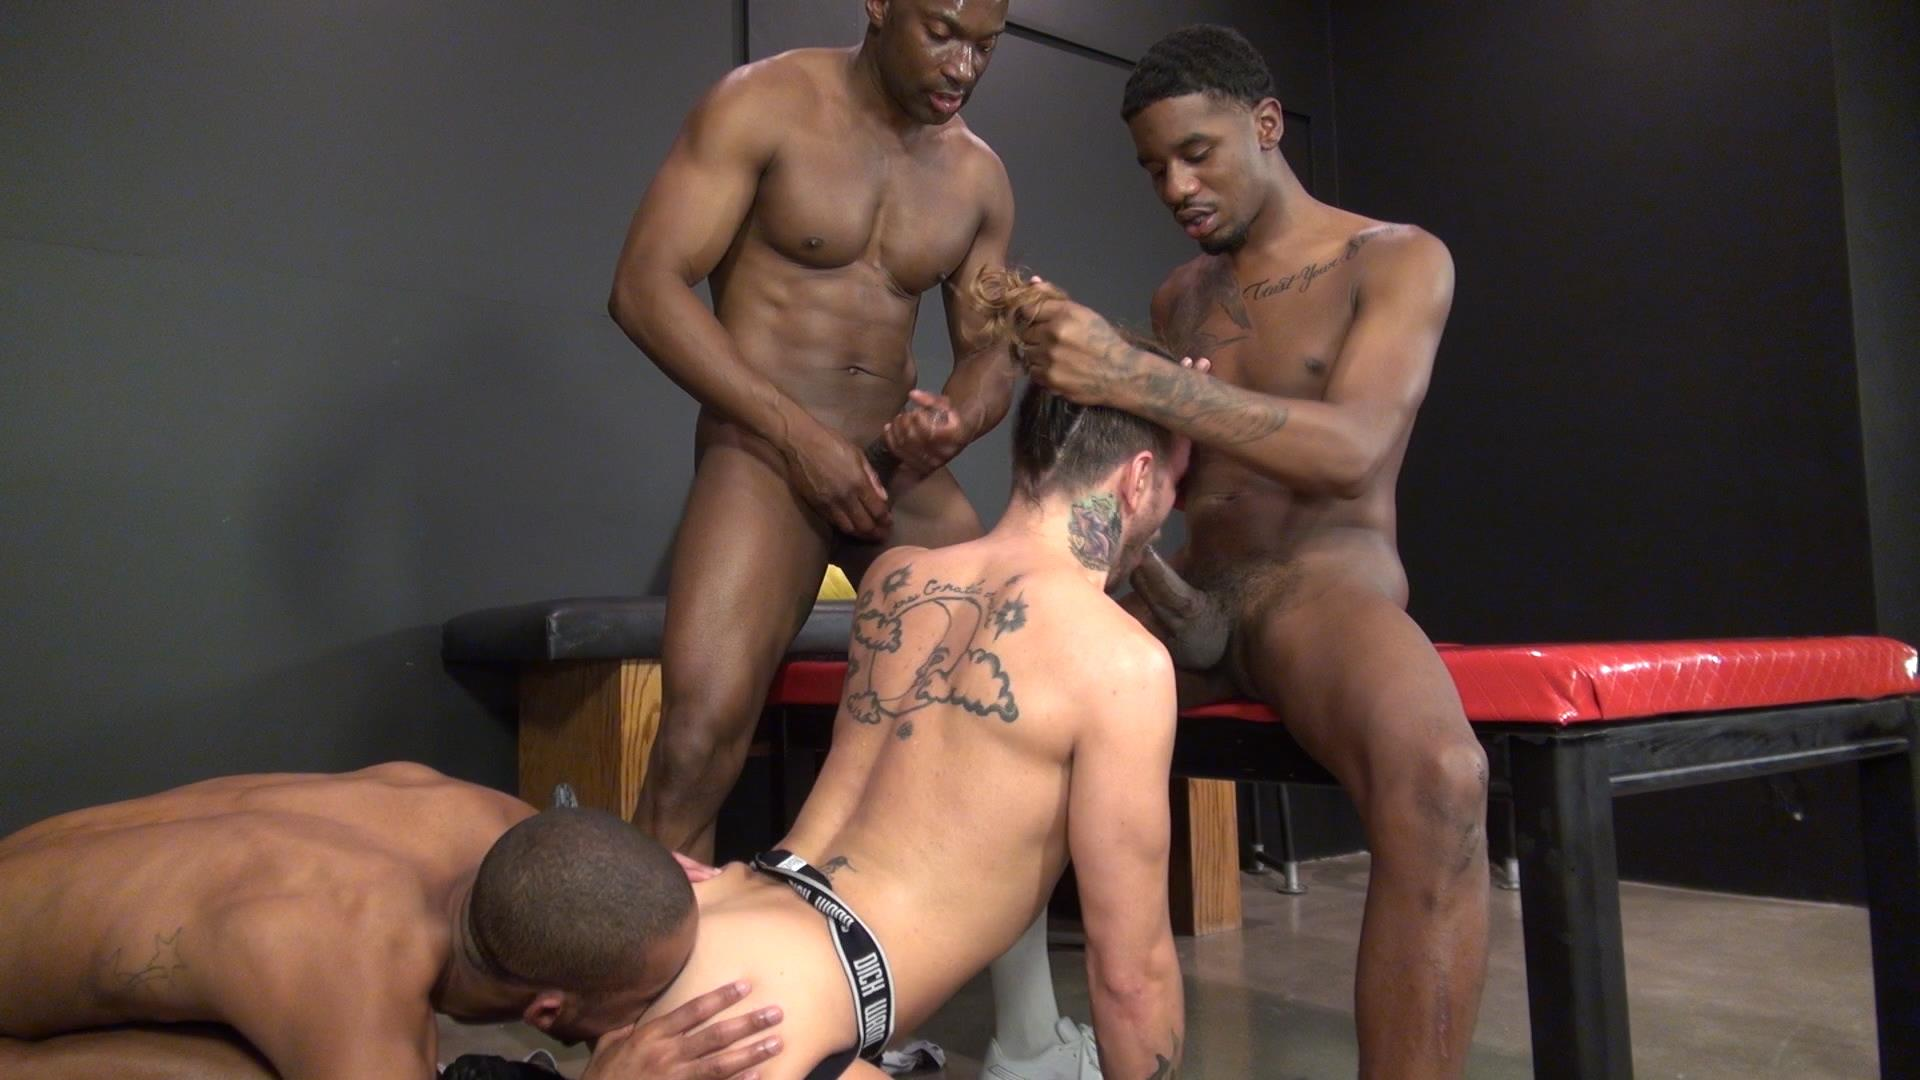 Black gay domination free videos